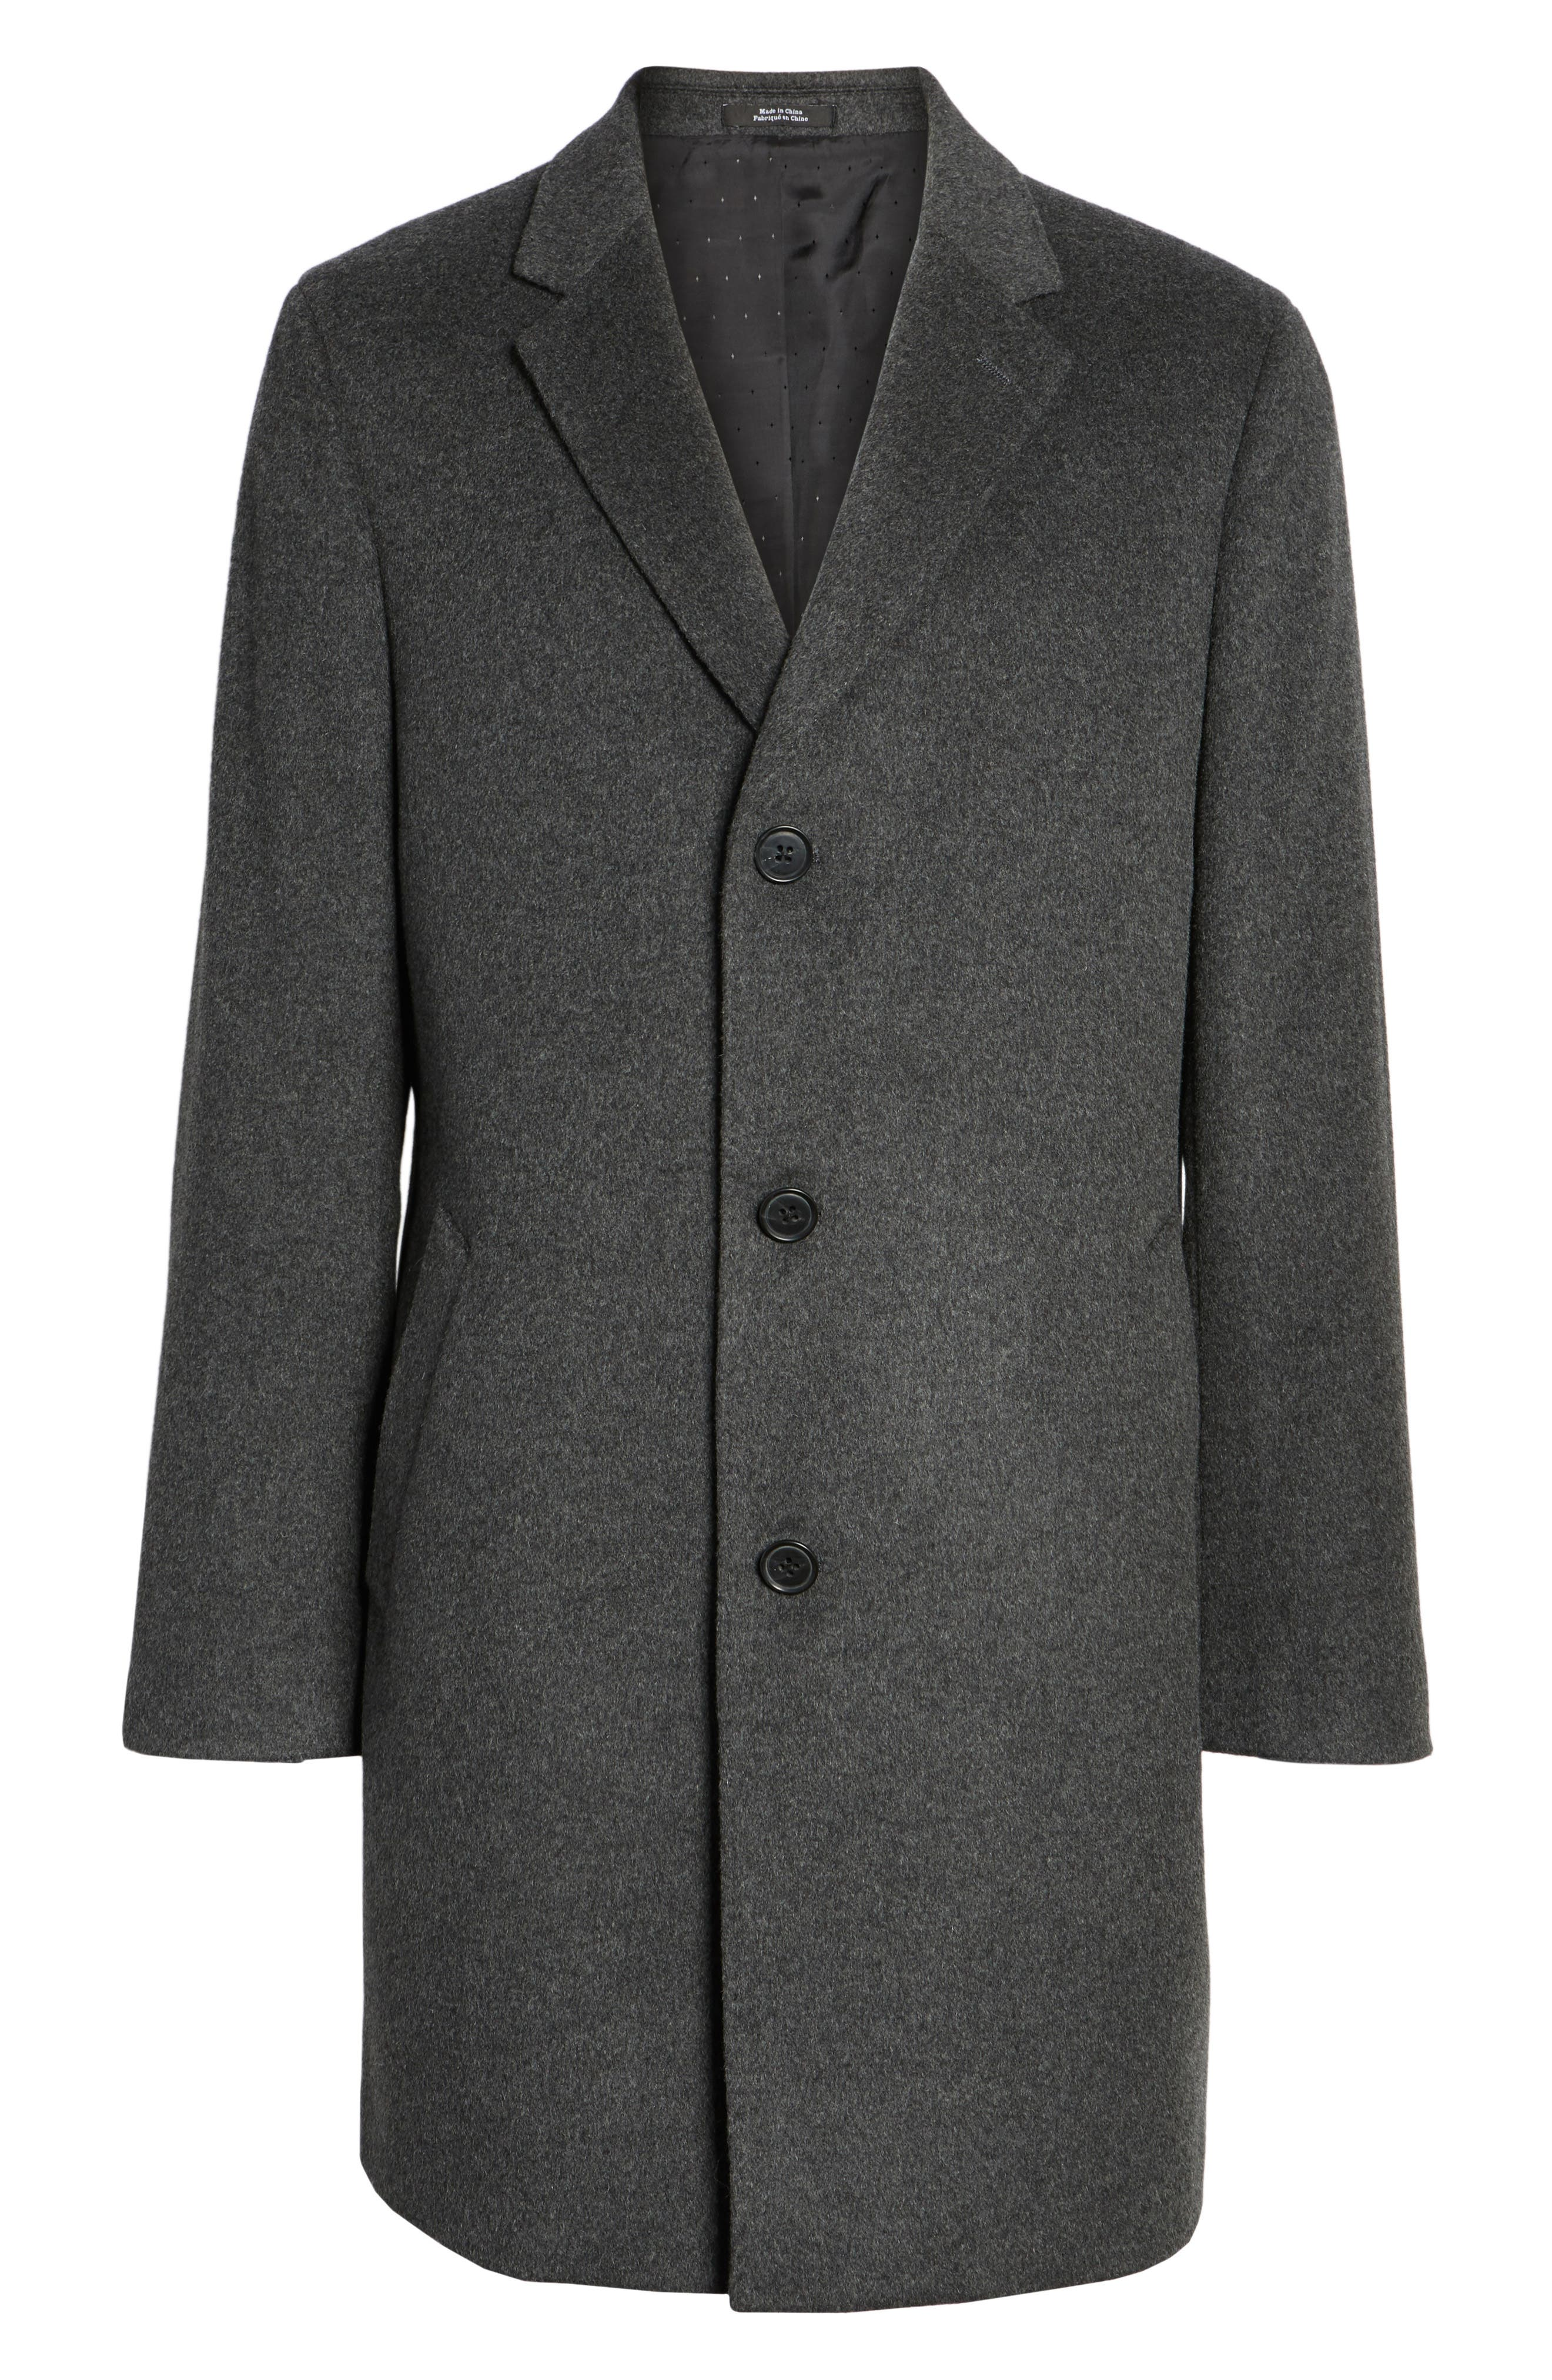 Mason Wool & Cashmere Overcoat,                             Alternate thumbnail 14, color,